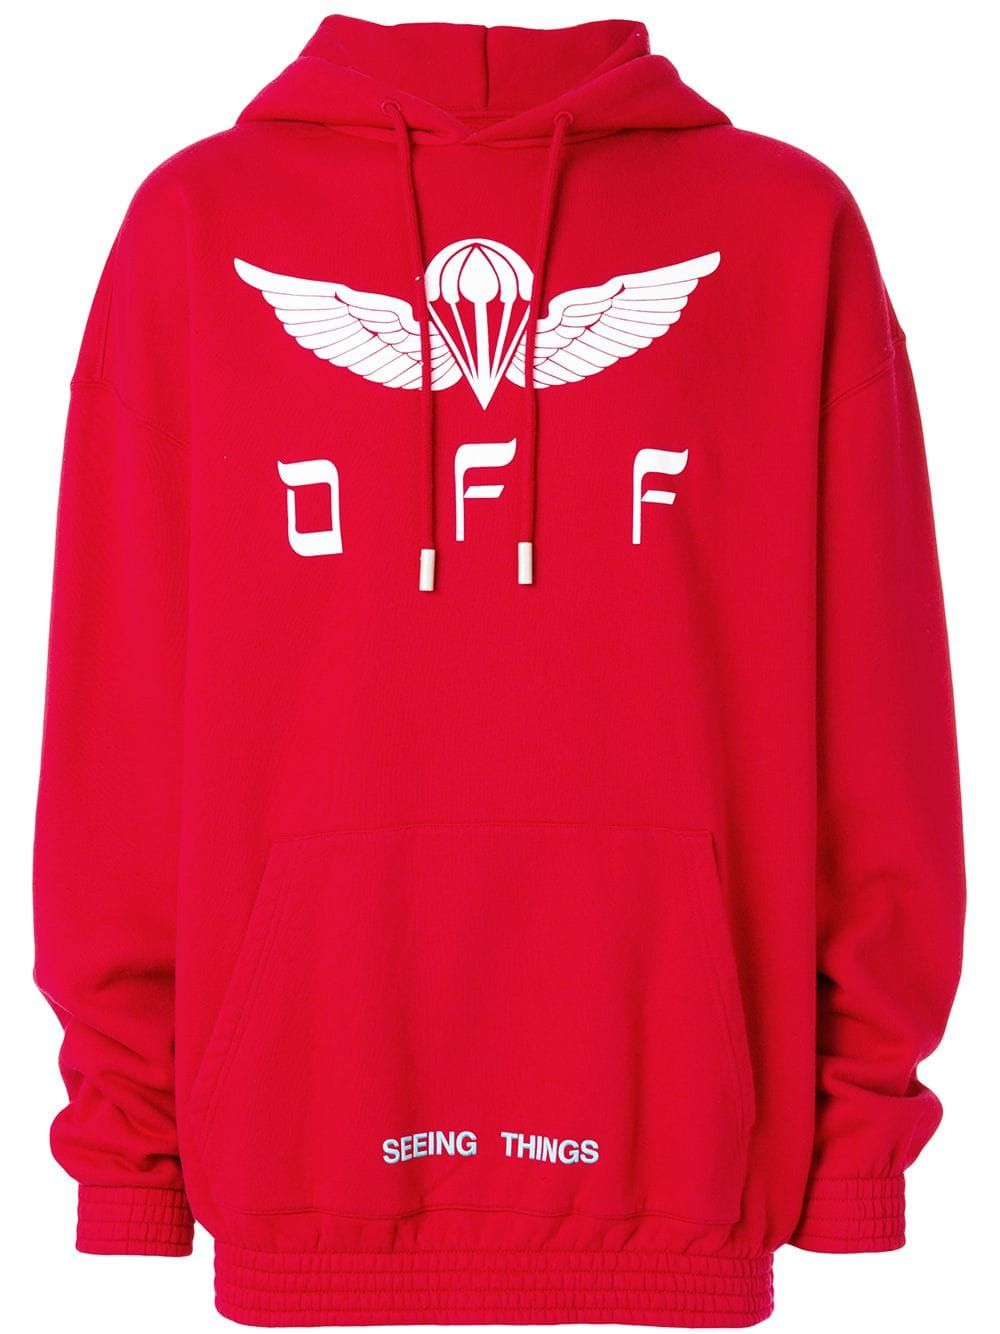 d2951aca3829 OFF-WHITE OFF-WHITE SEEING THINGS HOODIE - RED.  off-white  cloth ...